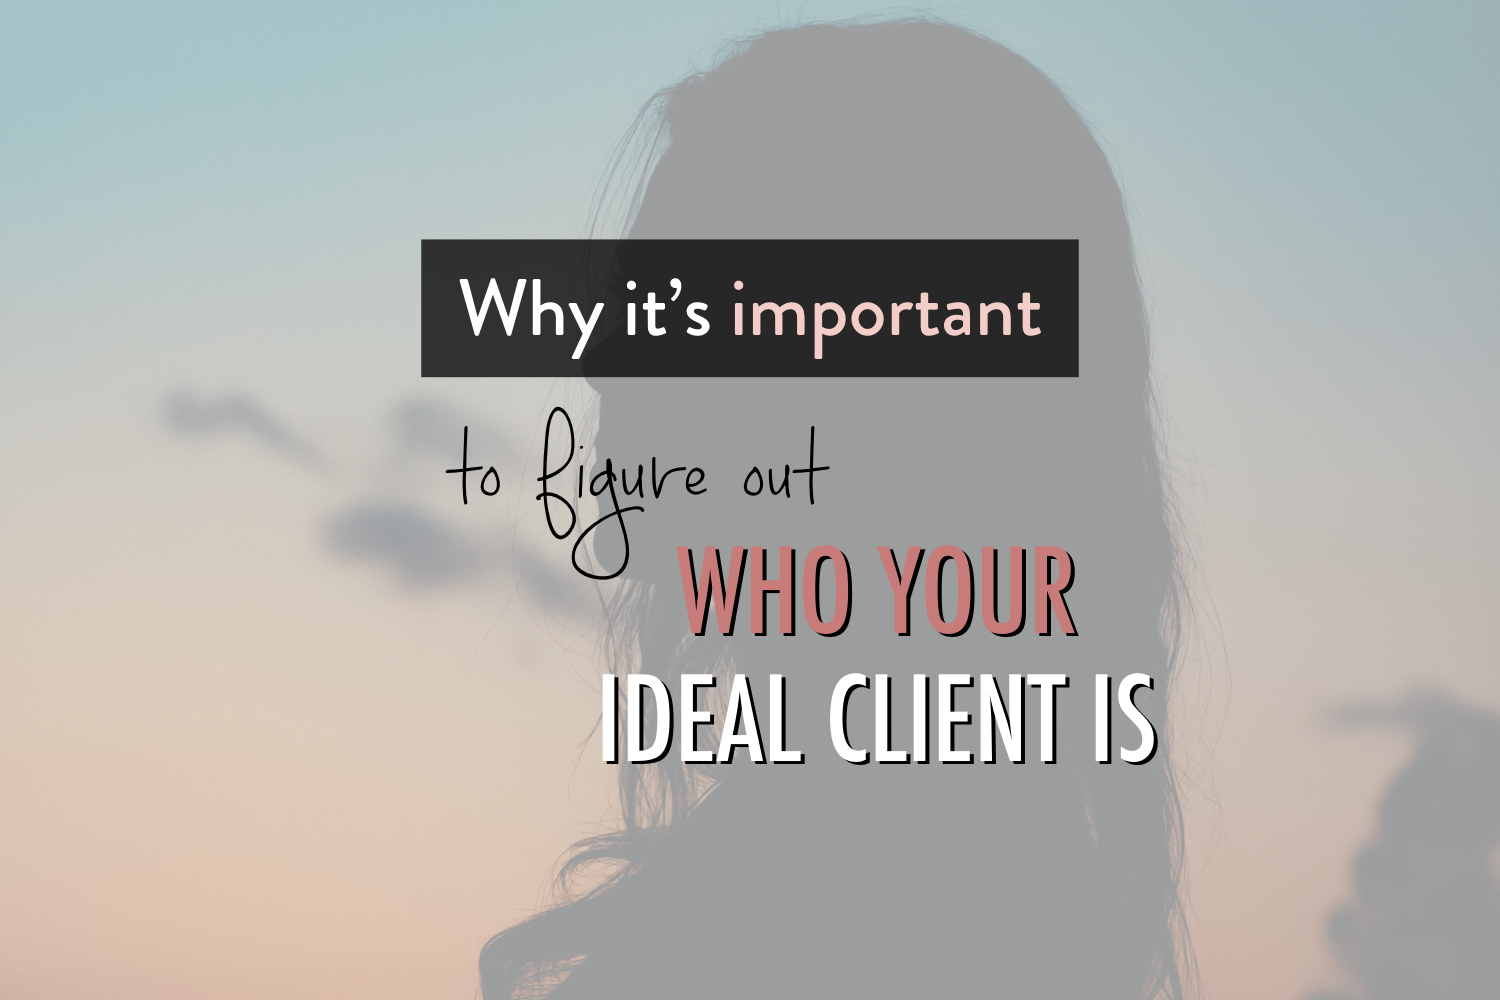 Why it's important to figure out who your ideal client is - stacy kessler.001 copy.jpeg